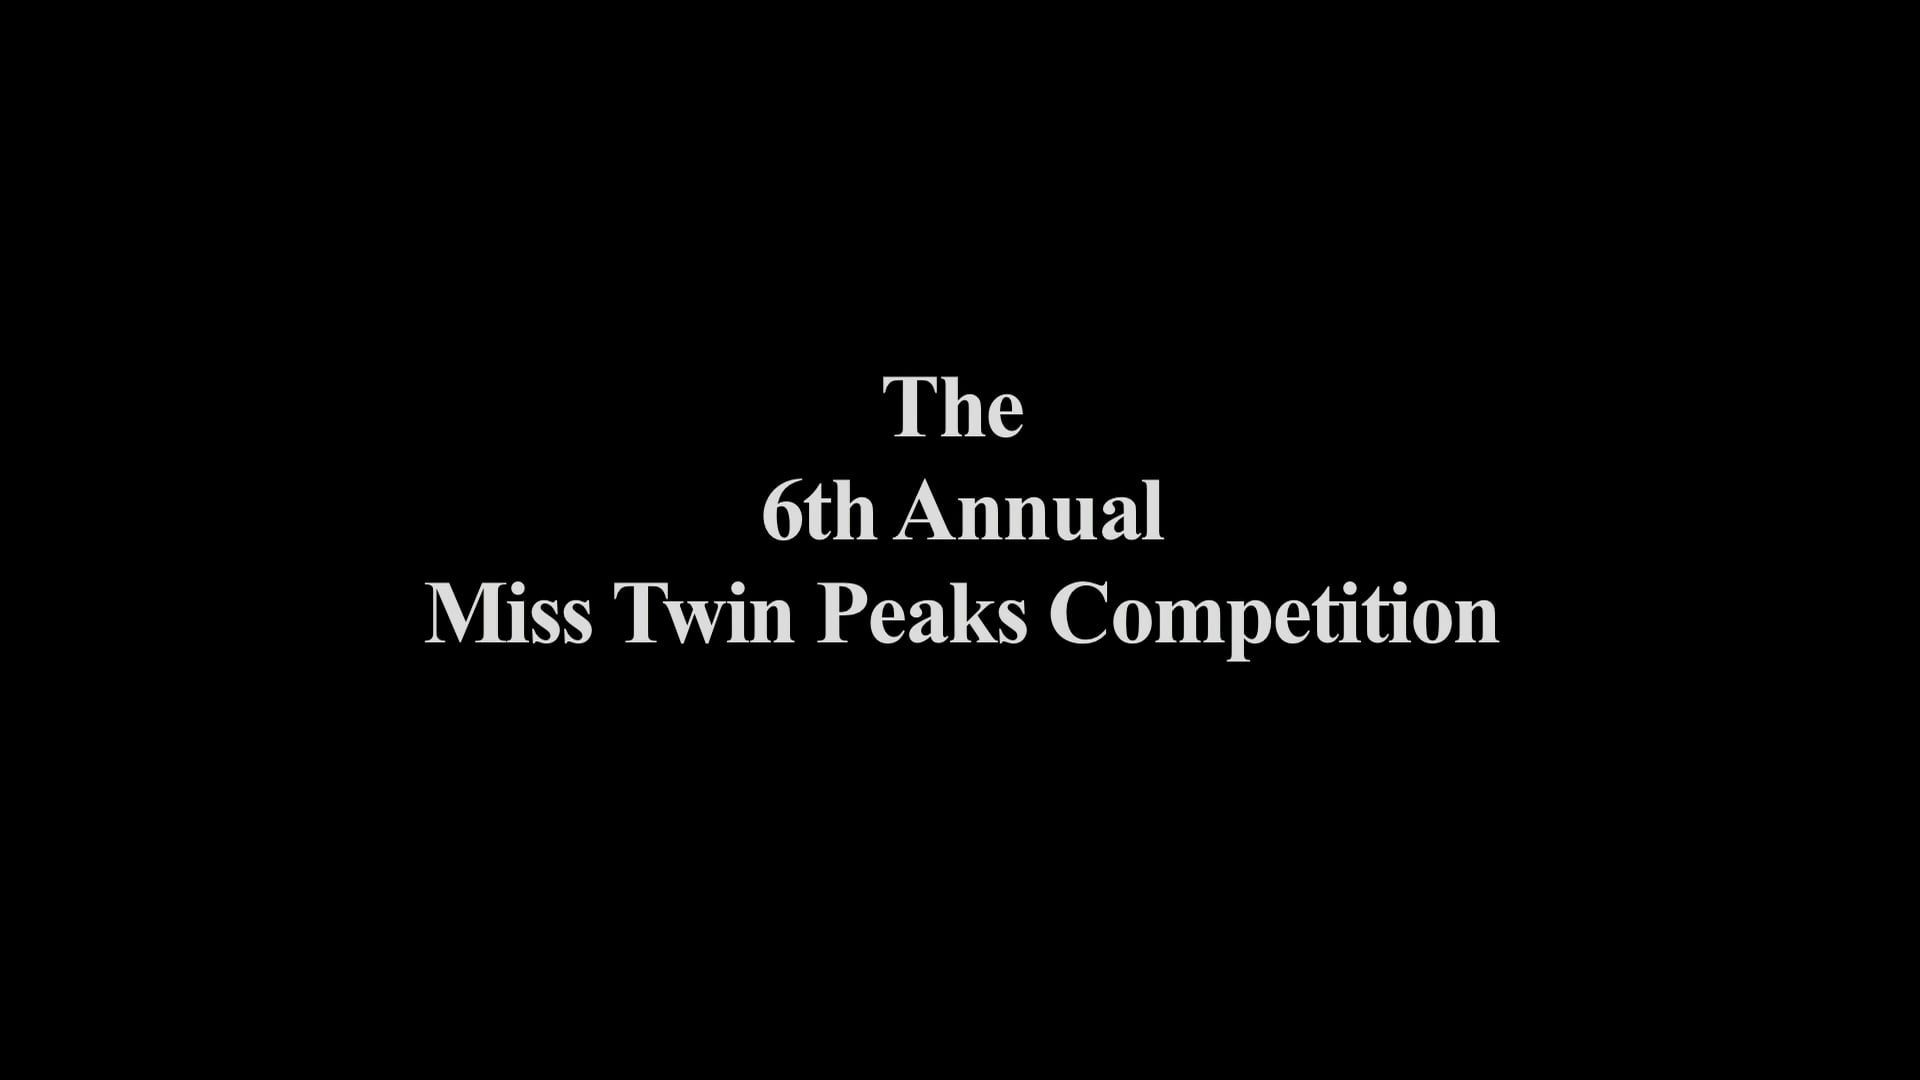 The Double R Club presents the 6th Annual Miss Twin Peaks Contest, 2015